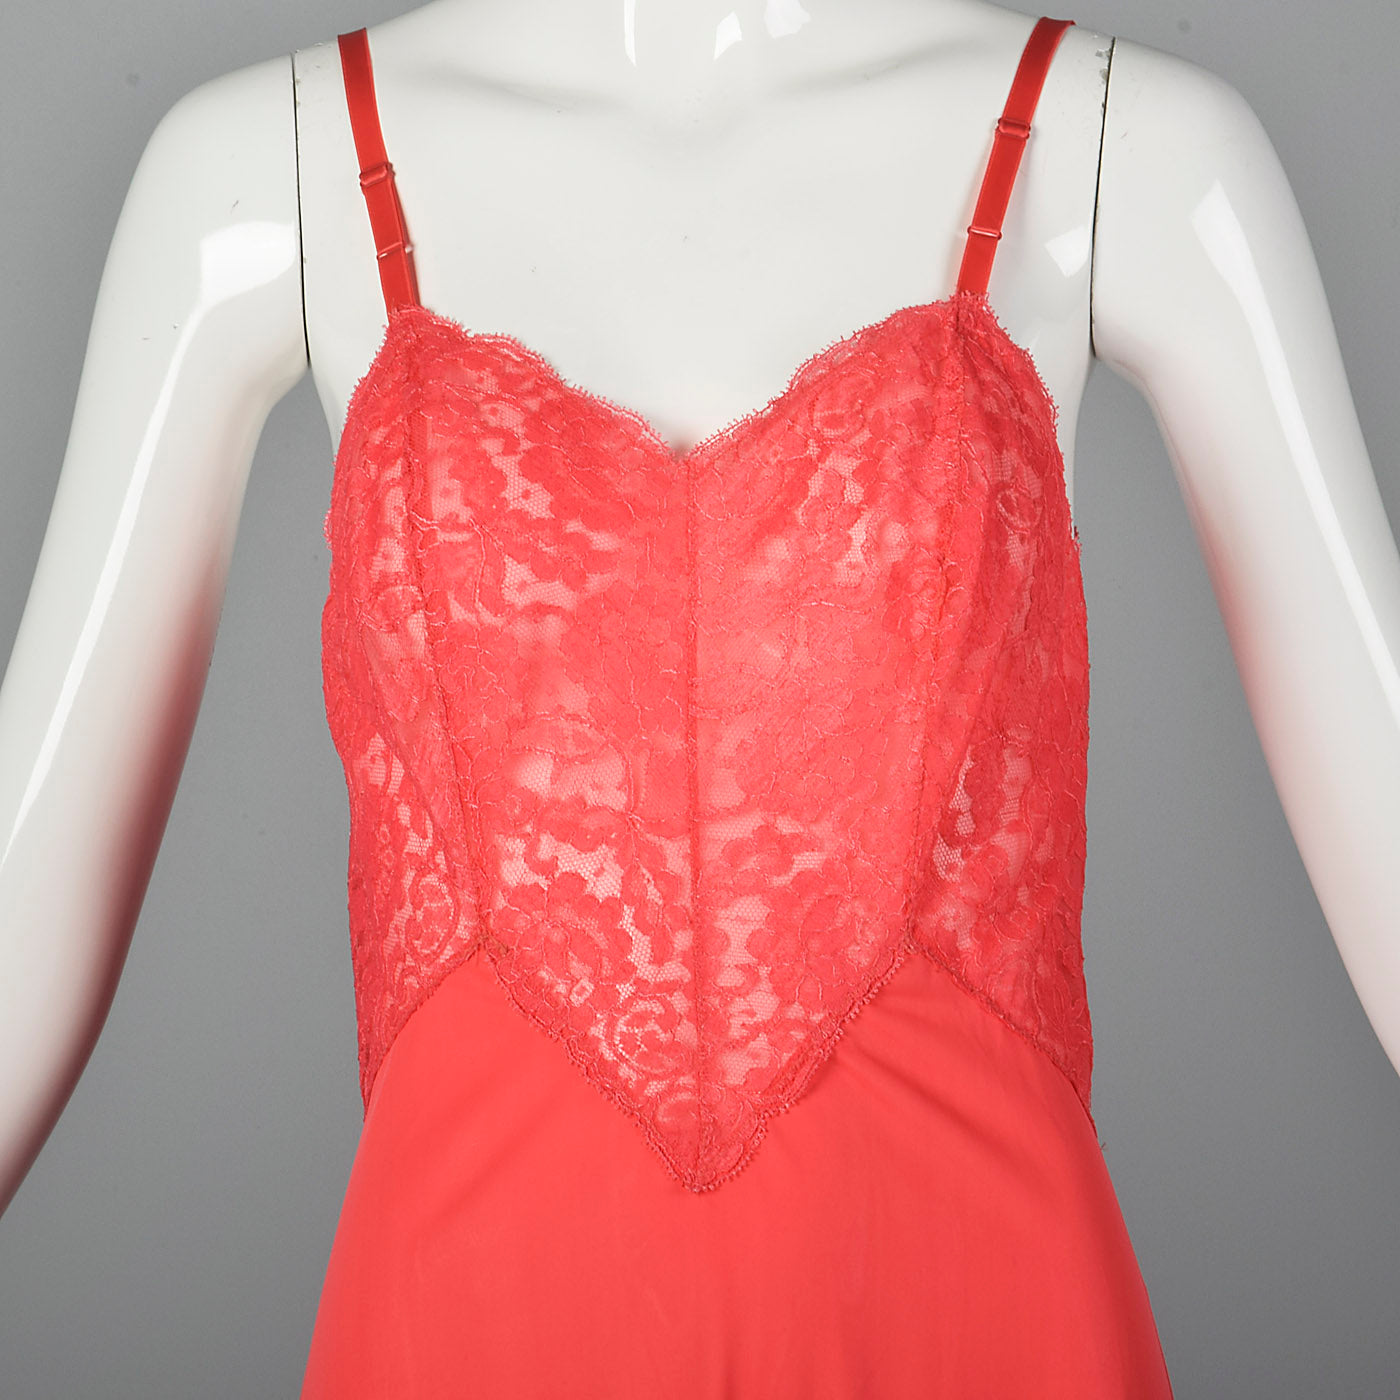 1960s Vanity Fair Bright Pink Slip